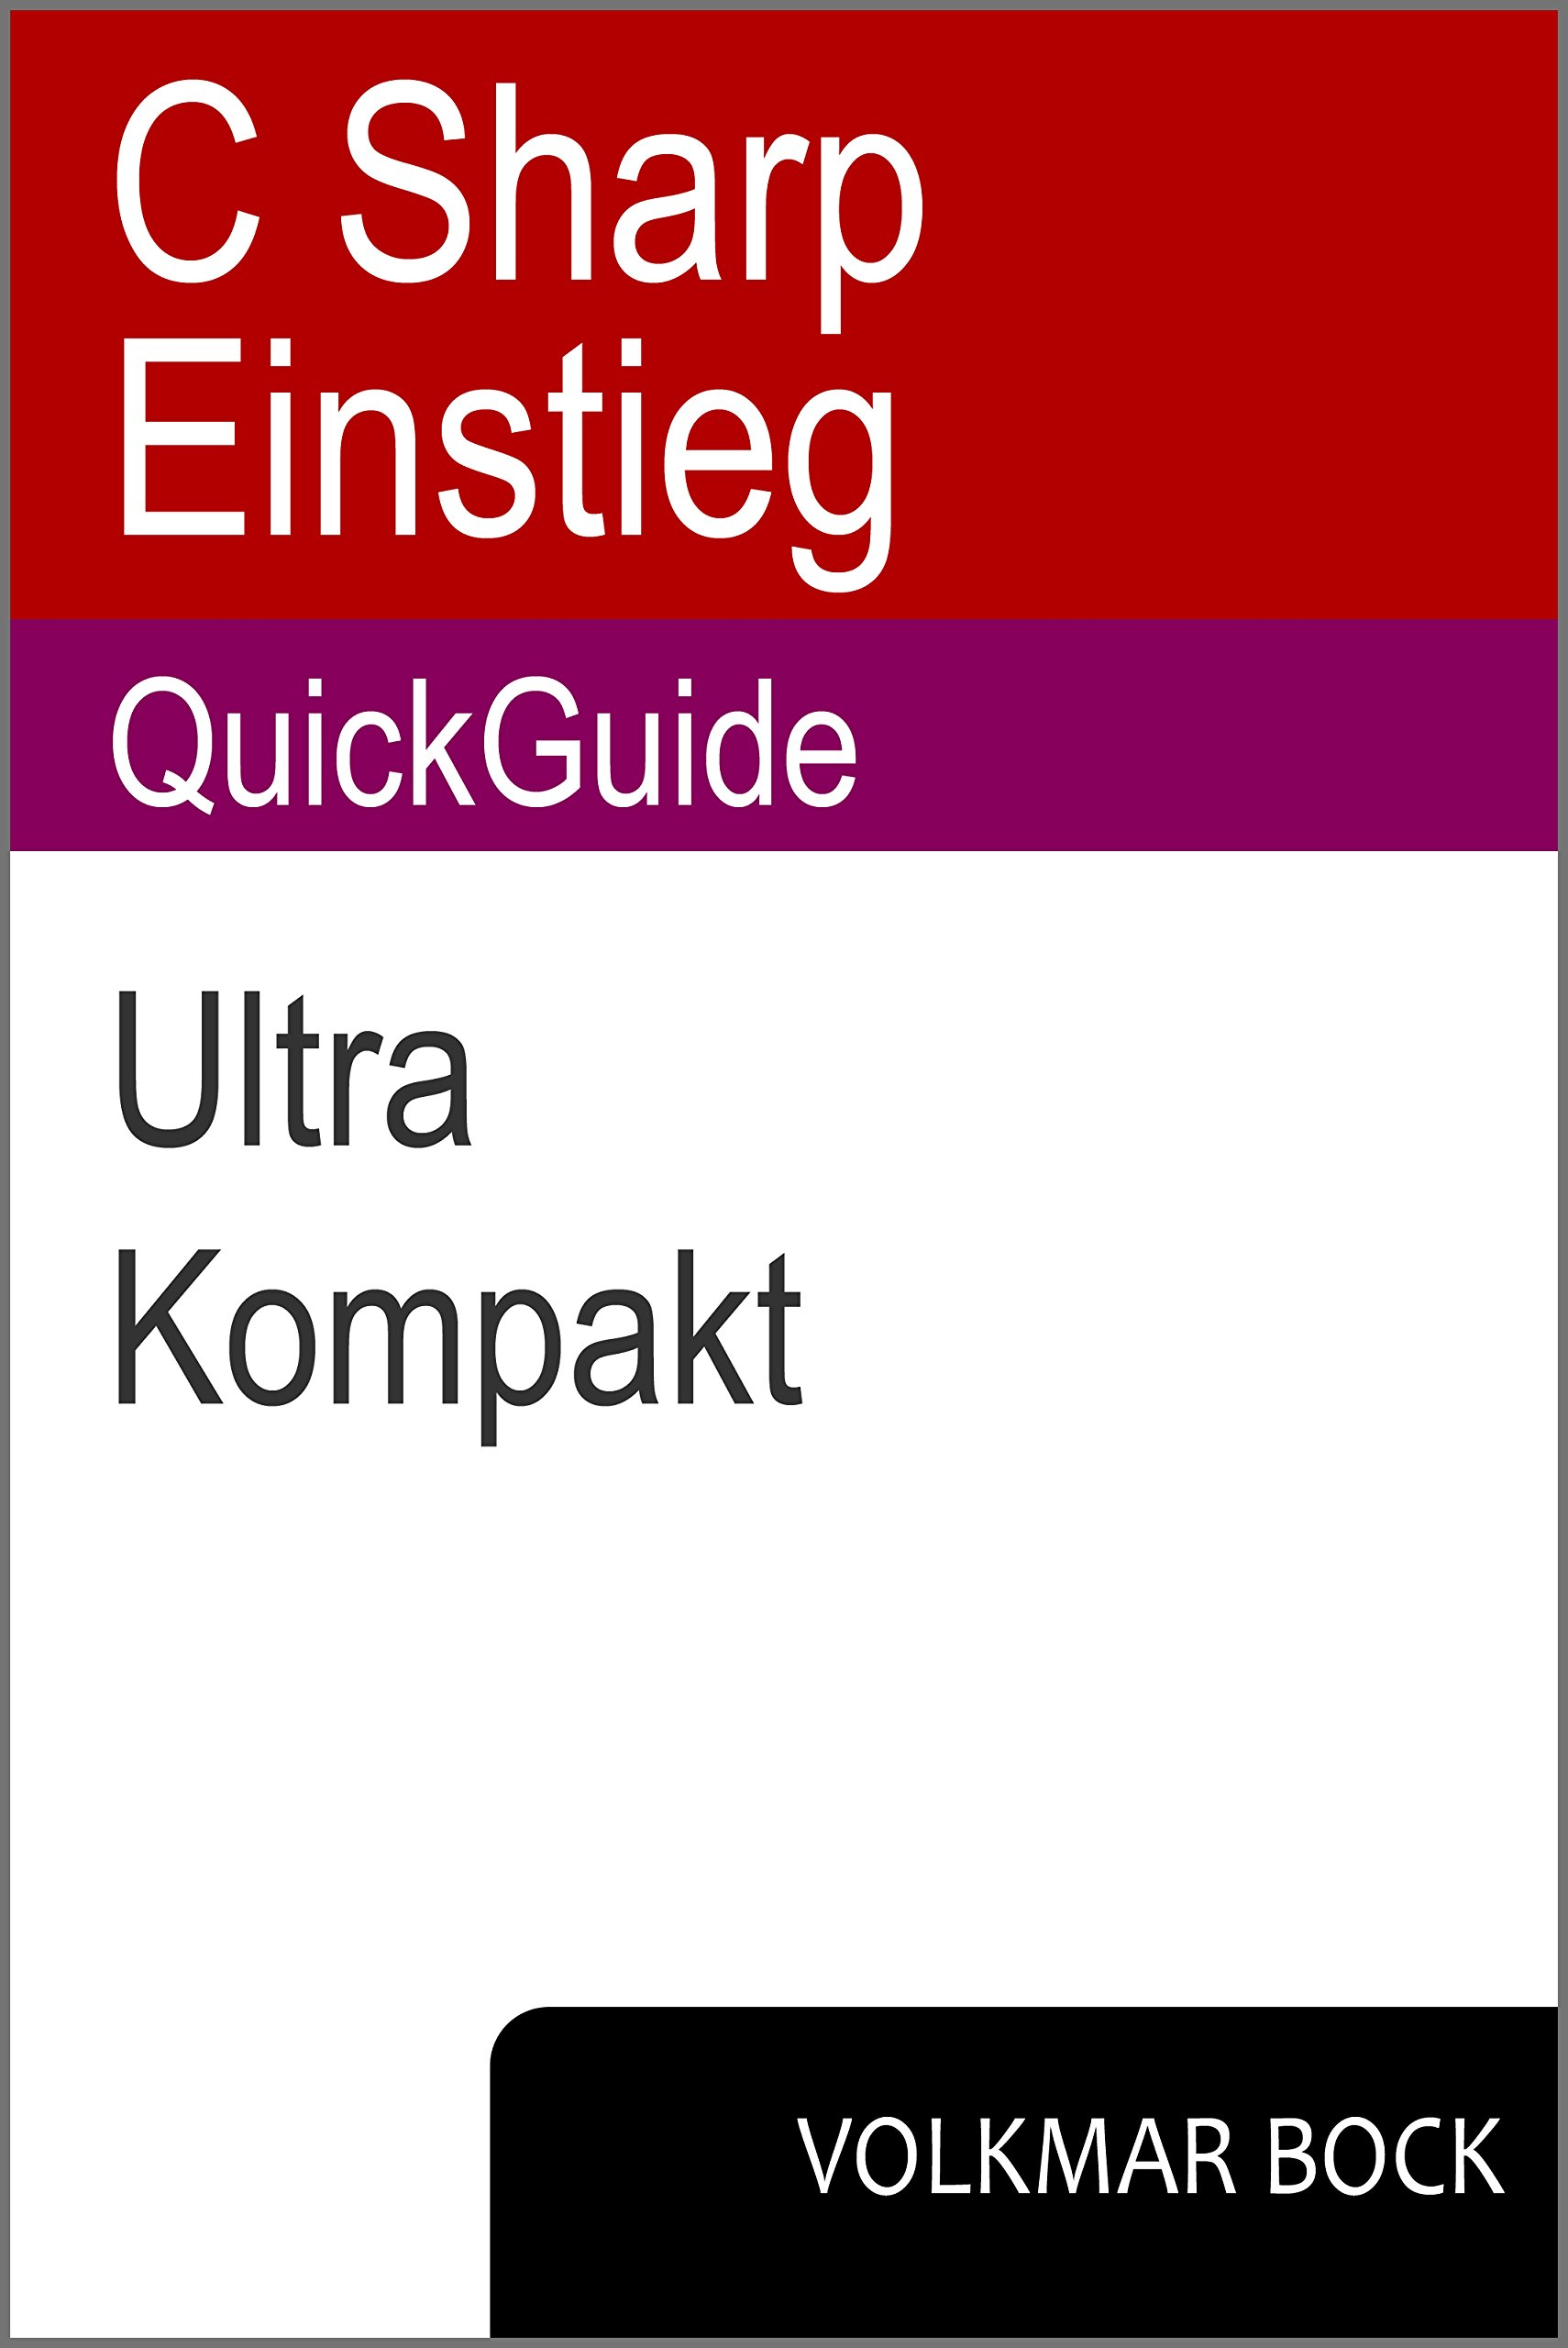 C Sharp Einstieg QuickGuide  Ultra Kompakt